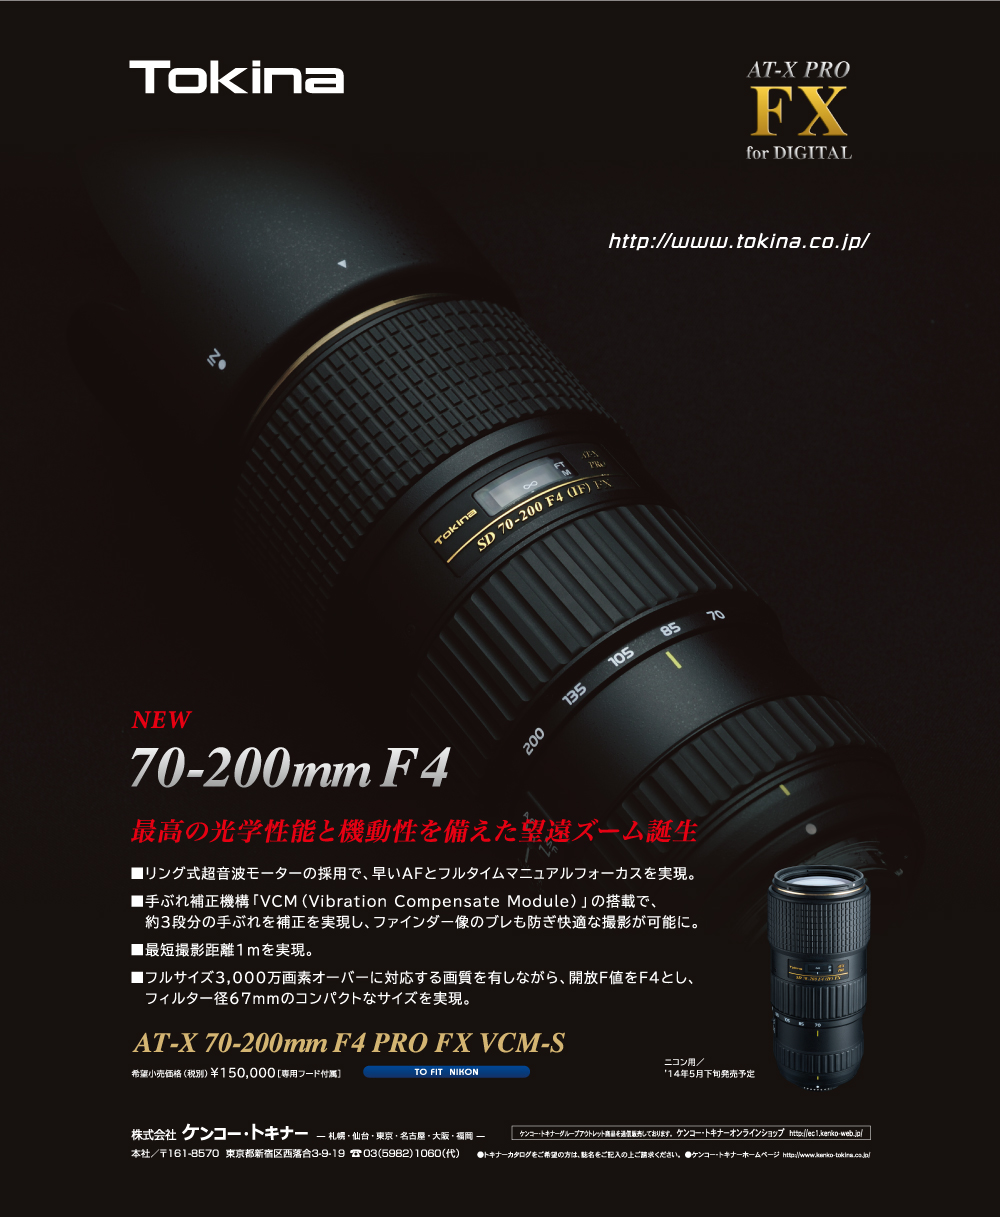 http://www.tokina.co.jp/camera-lenses/atx70-200_201405.jpg